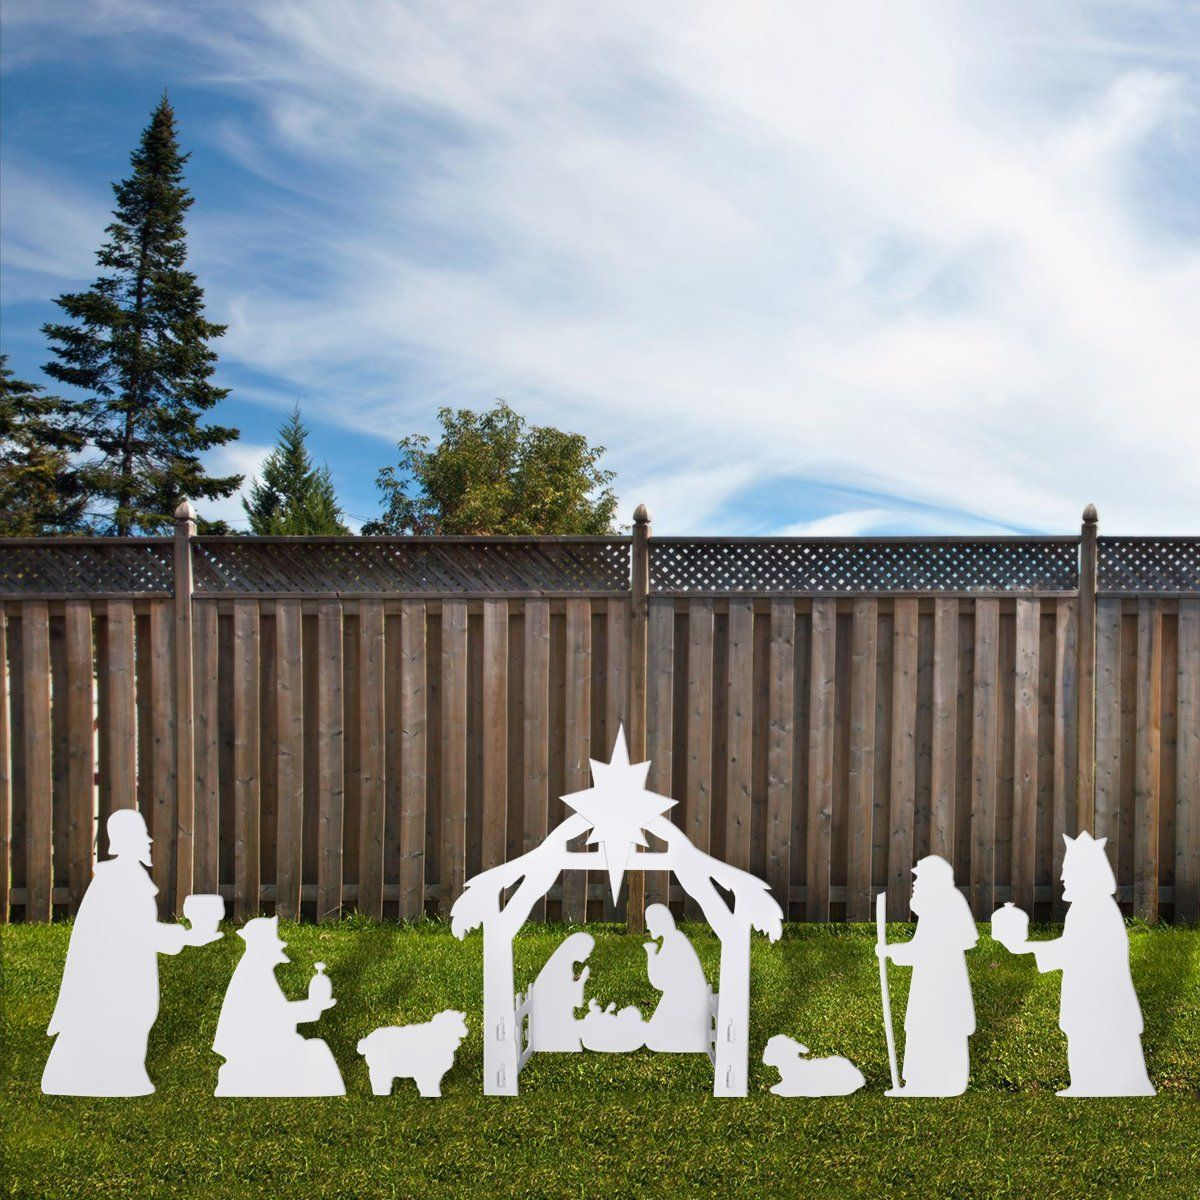 Unomor Outdoor Nativity Scene Christmas Decoration Silhouette Style About 4 Feet Tall Outdoor Nativity Scene Outdoor Nativity Outdoor Christmas Decorations